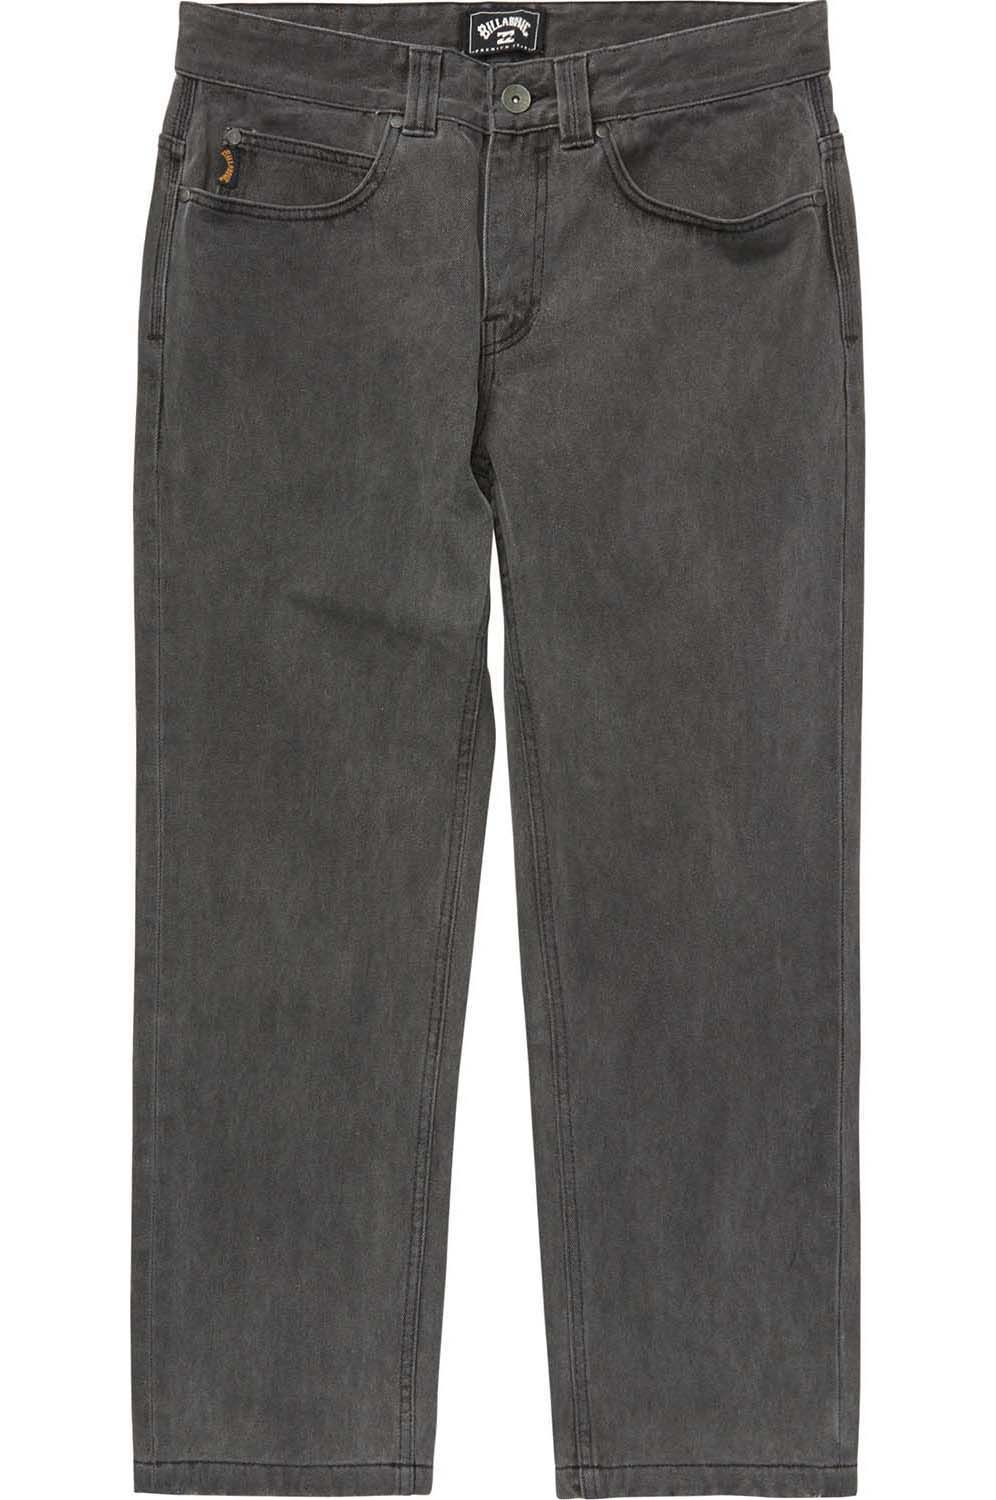 Billabong Pant Jeans FIFTY CROPPED REISSUE Vintage Black